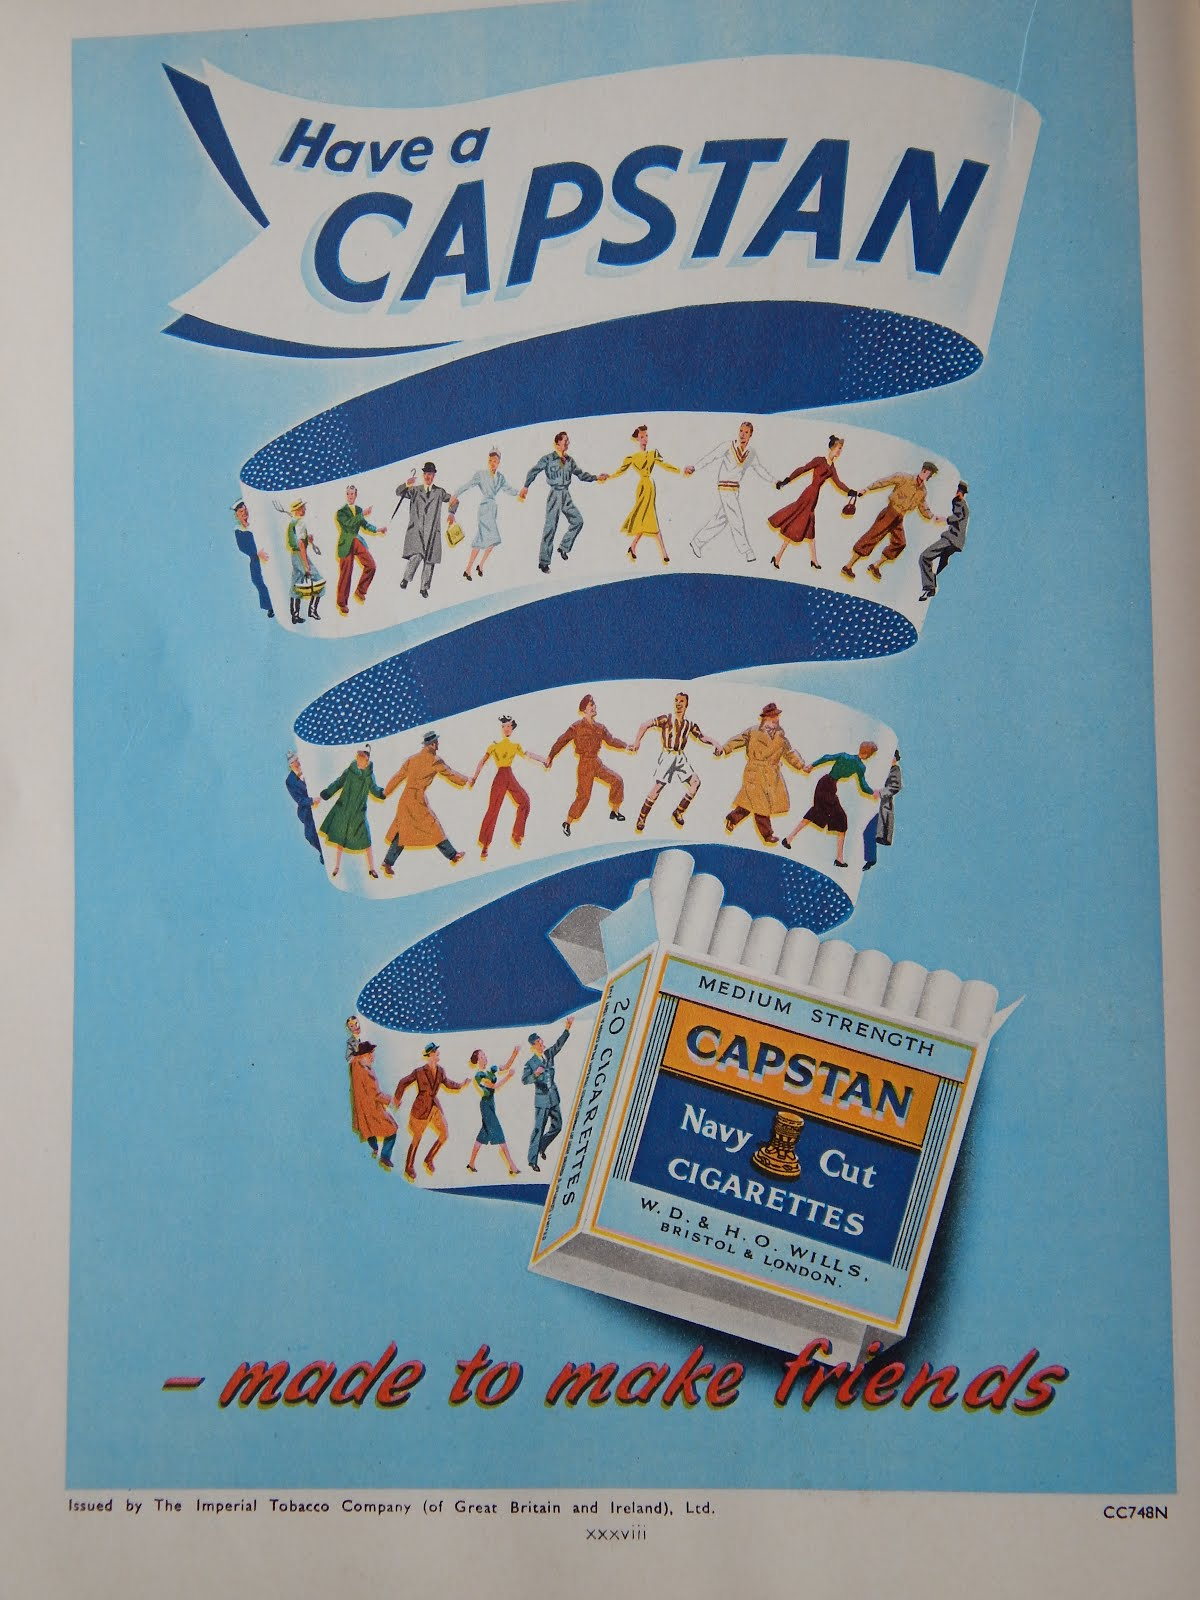 Now who remembers Capstan Full Strength?